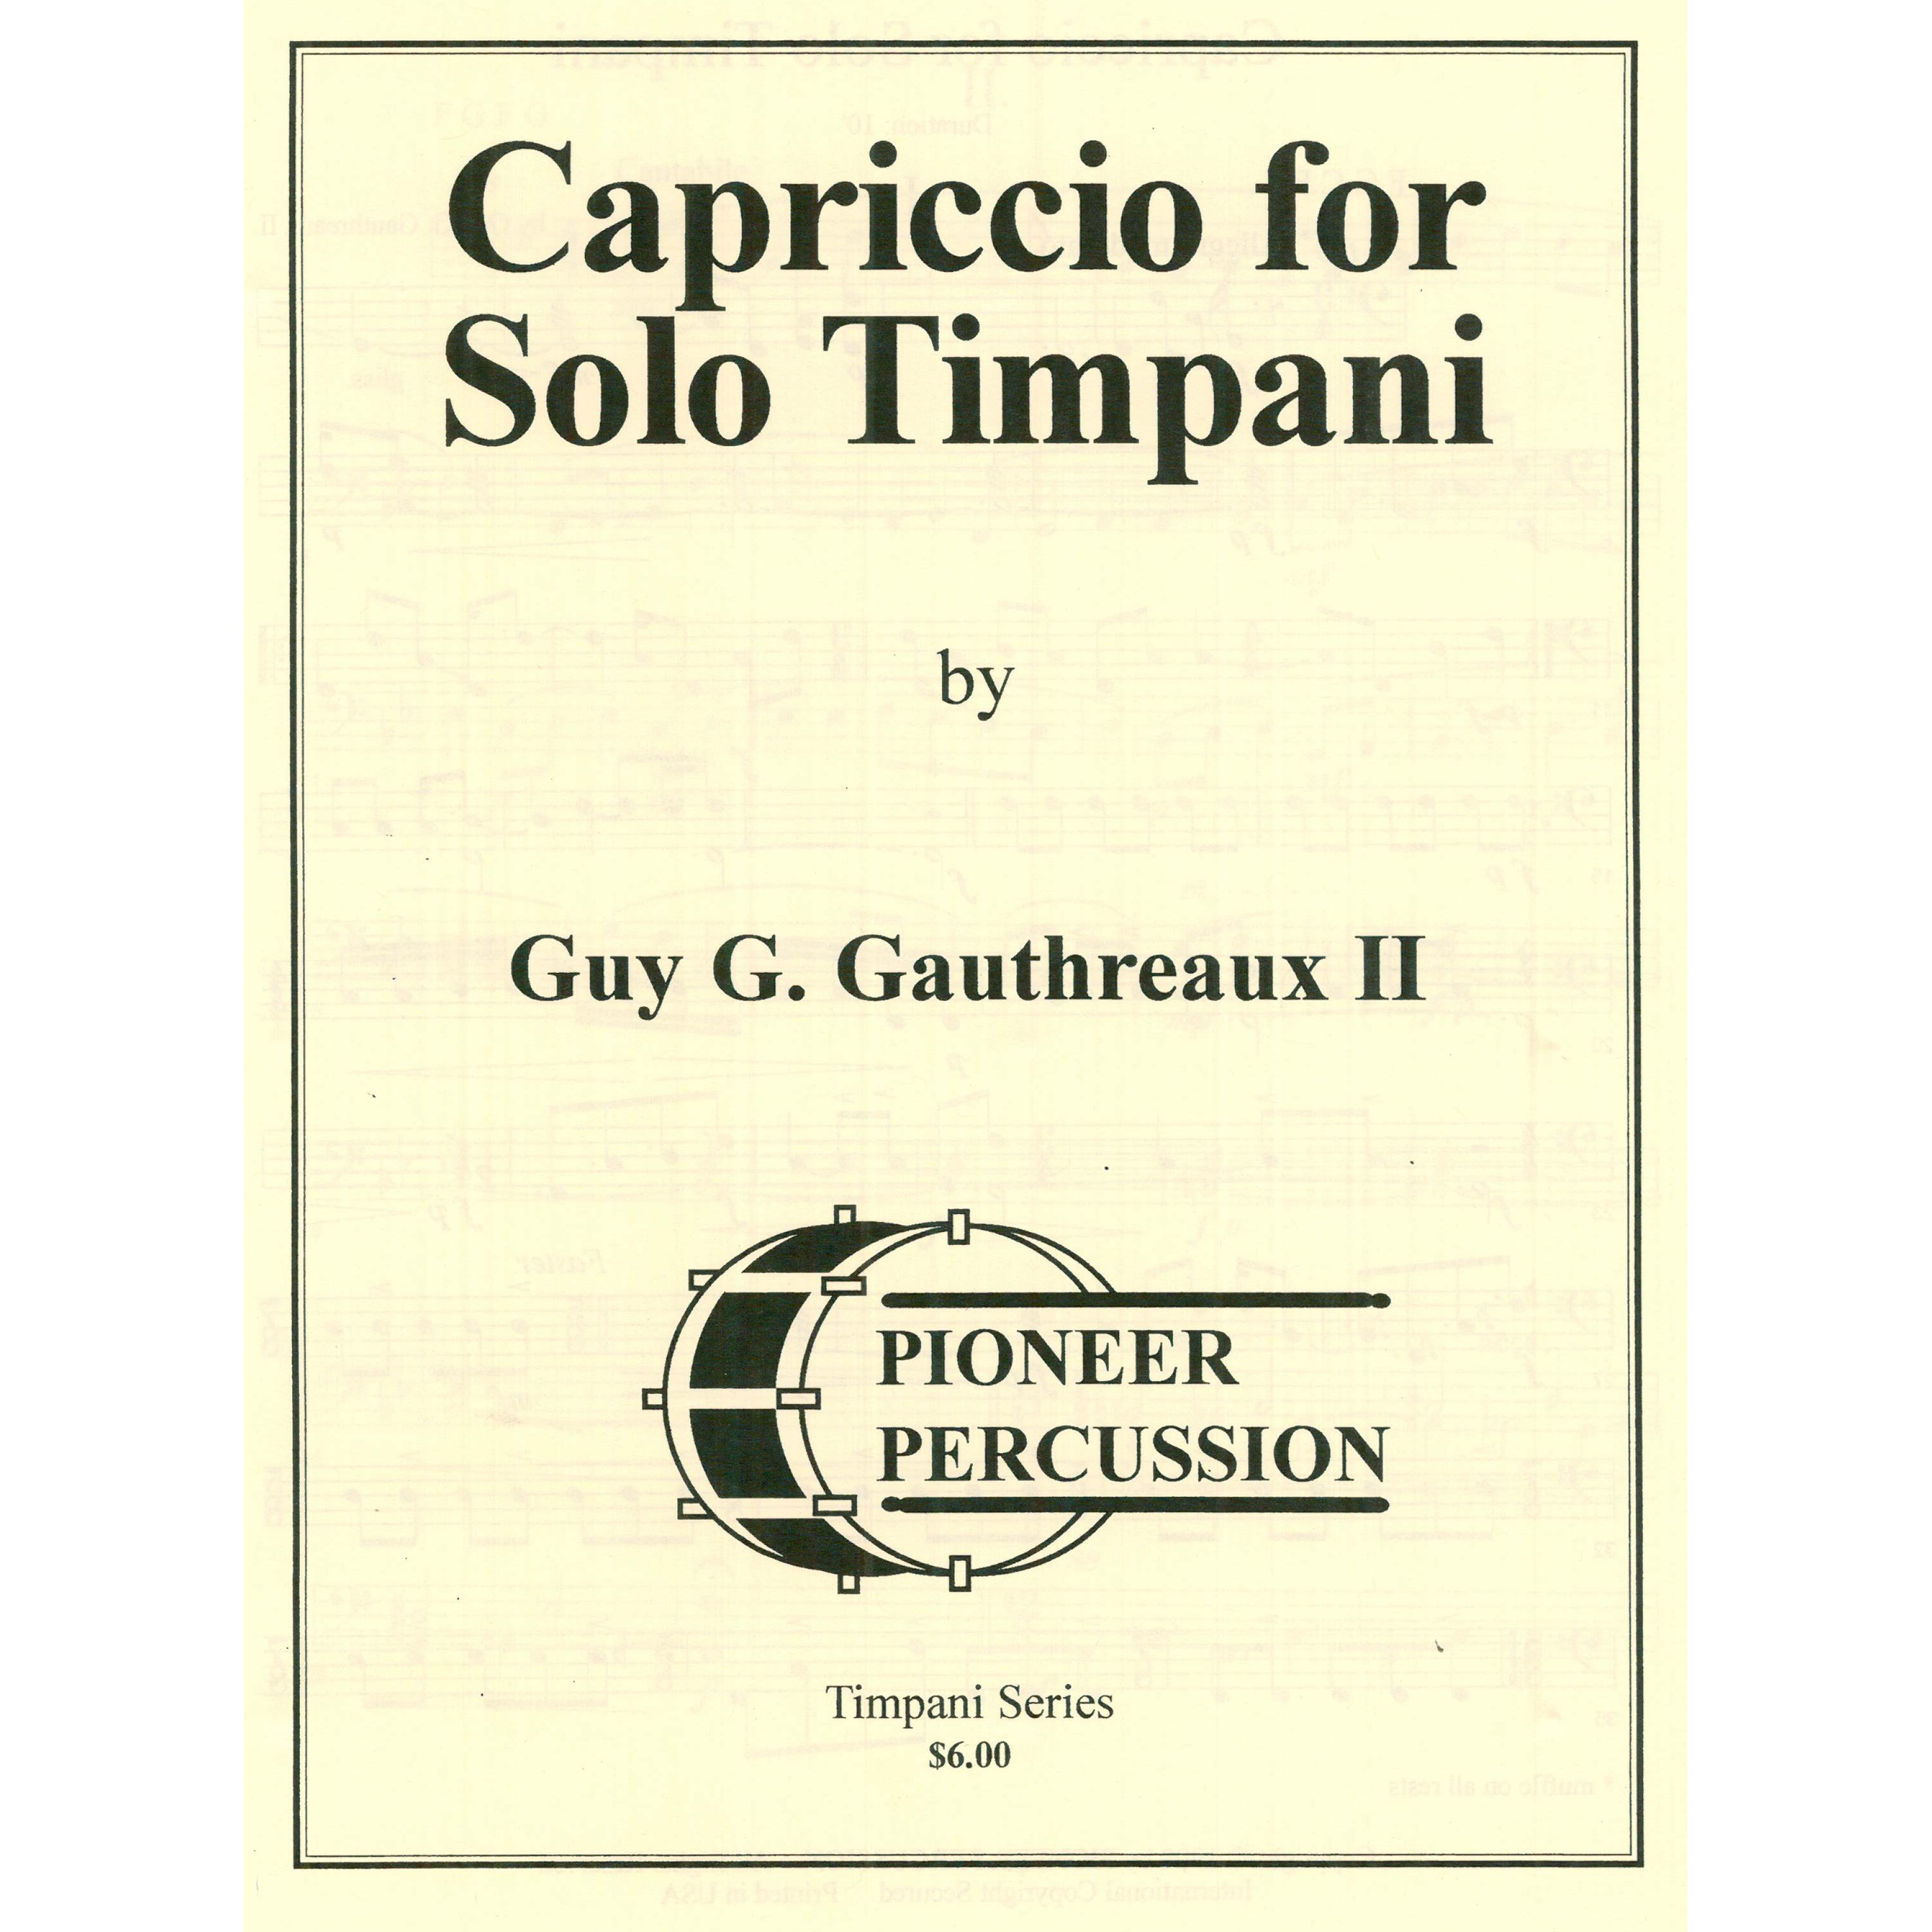 Capriccio for Solo Timpani by Guy Gauthreaux